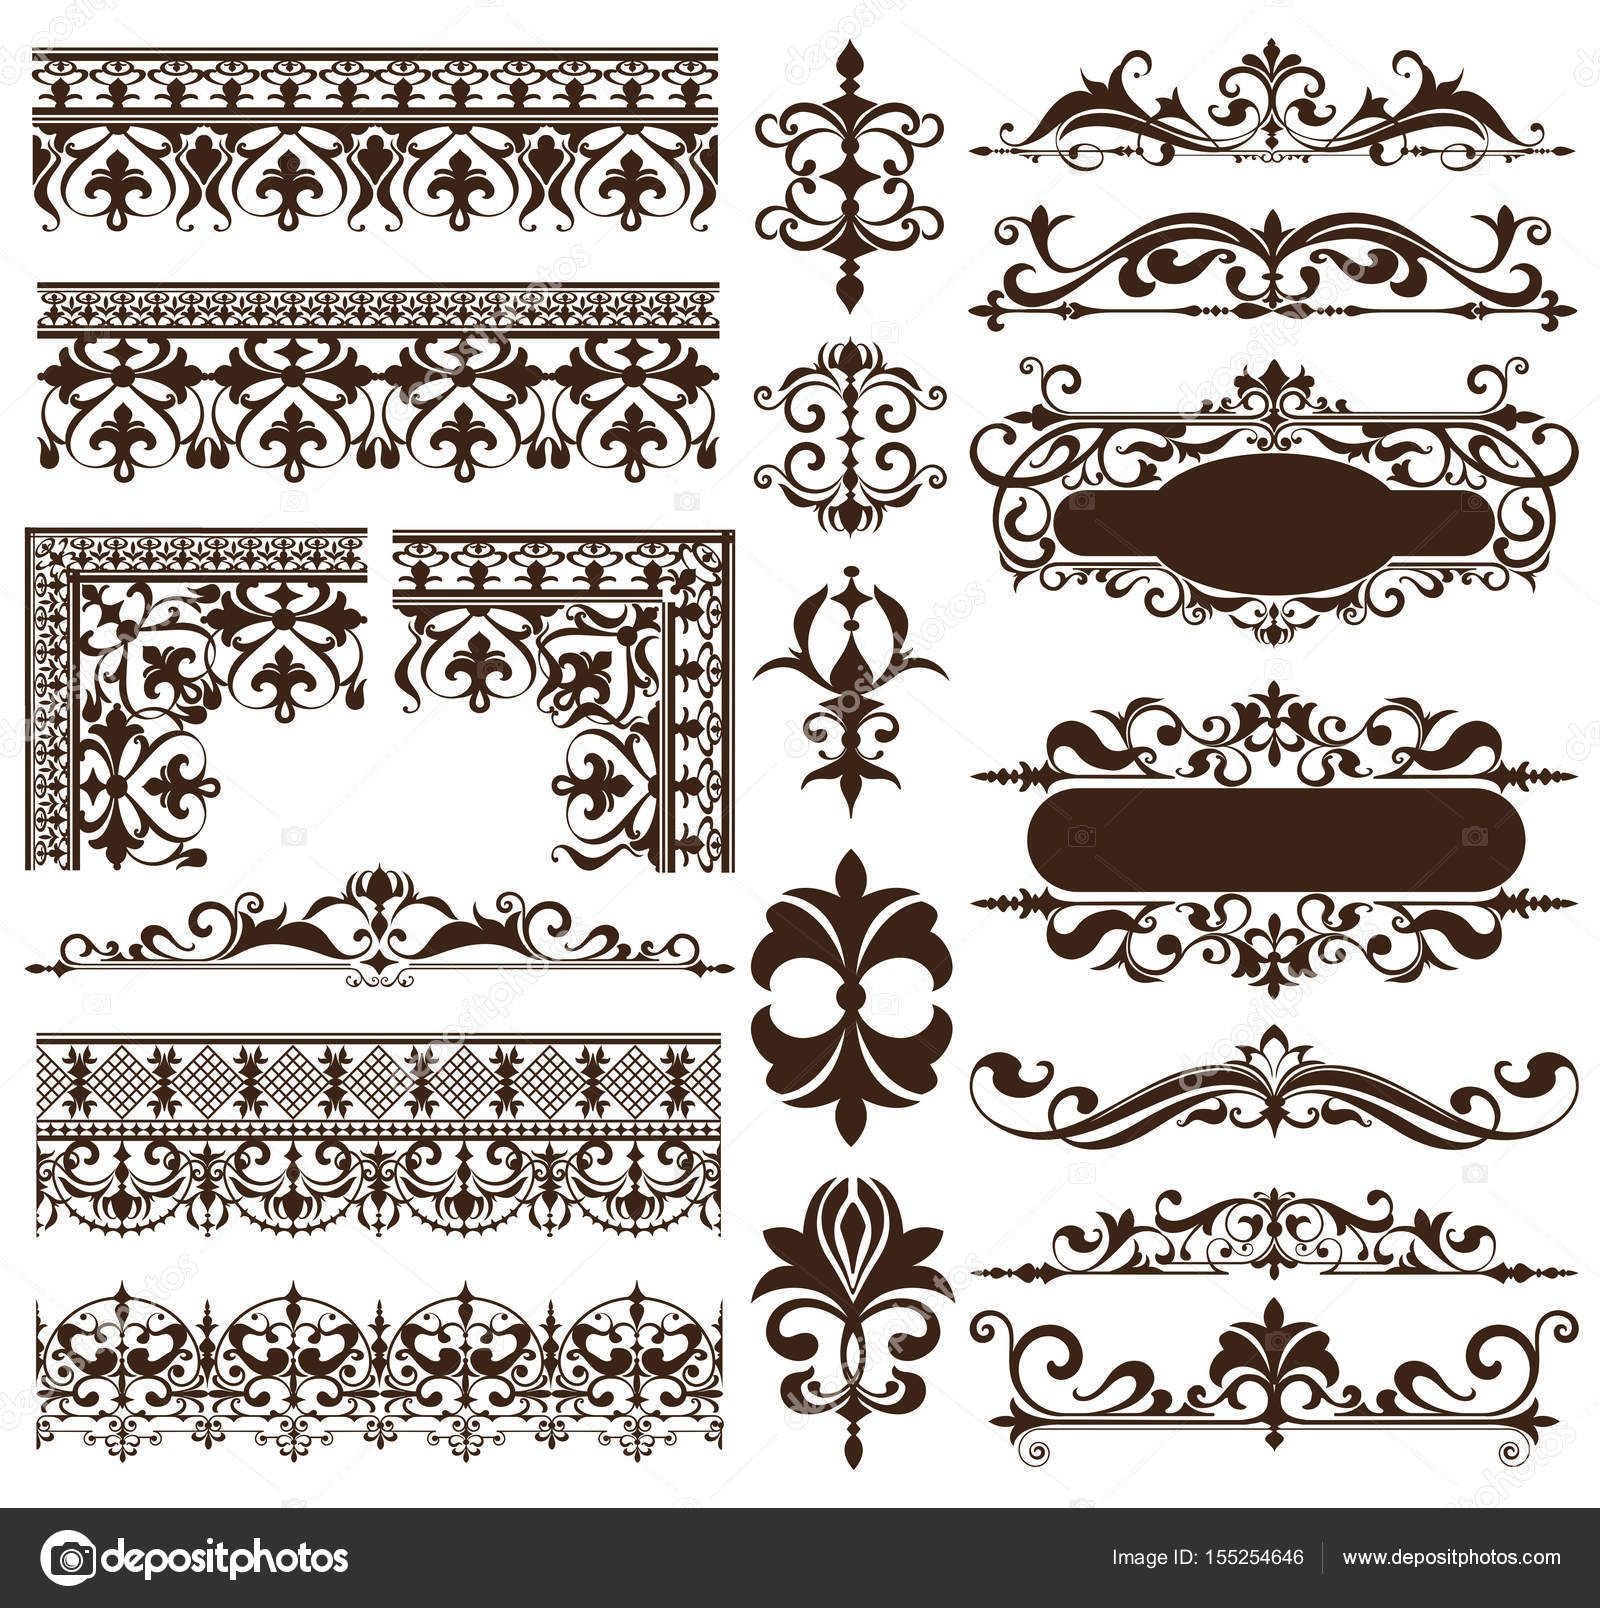 Download Art Deco Design Elements Of Vintage Ornaments And Borders Corners Of The Frame Isolated Art Vintage Ornaments Art Deco Illustration Art Deco Design